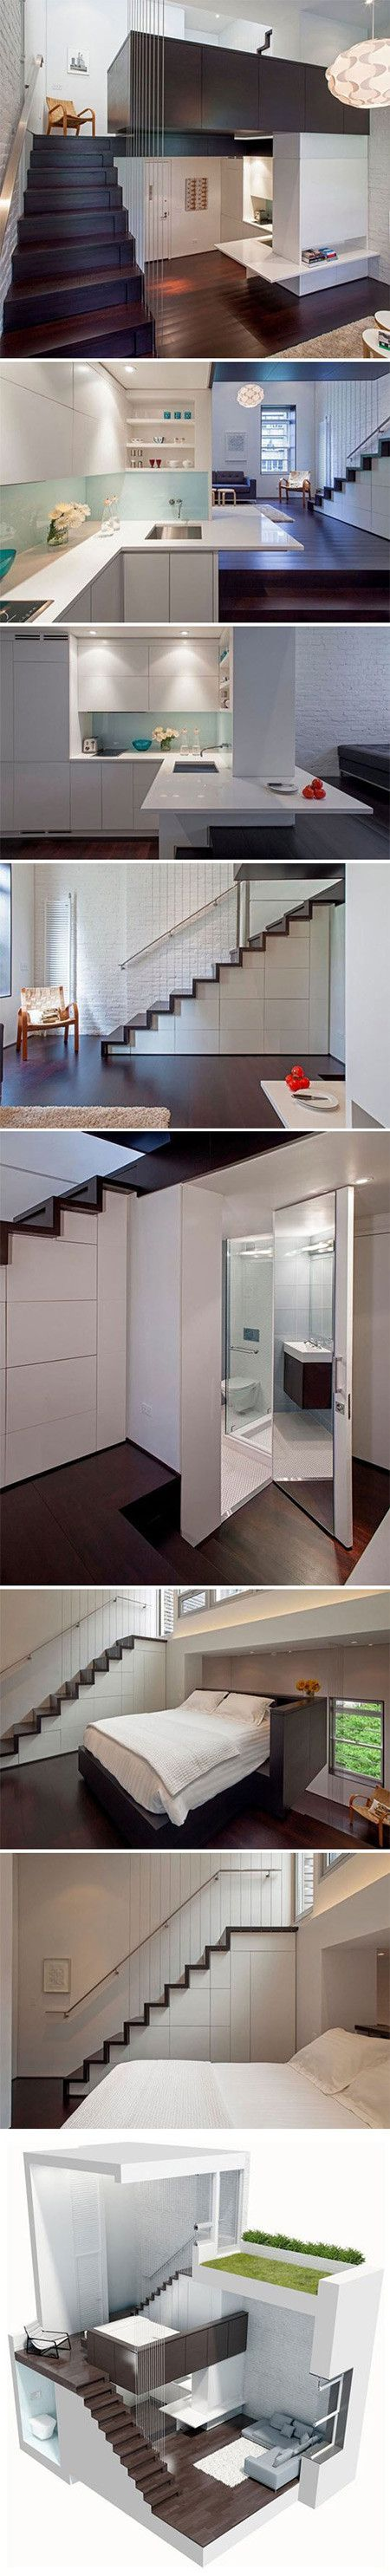 This is how all small homes should be designed.: